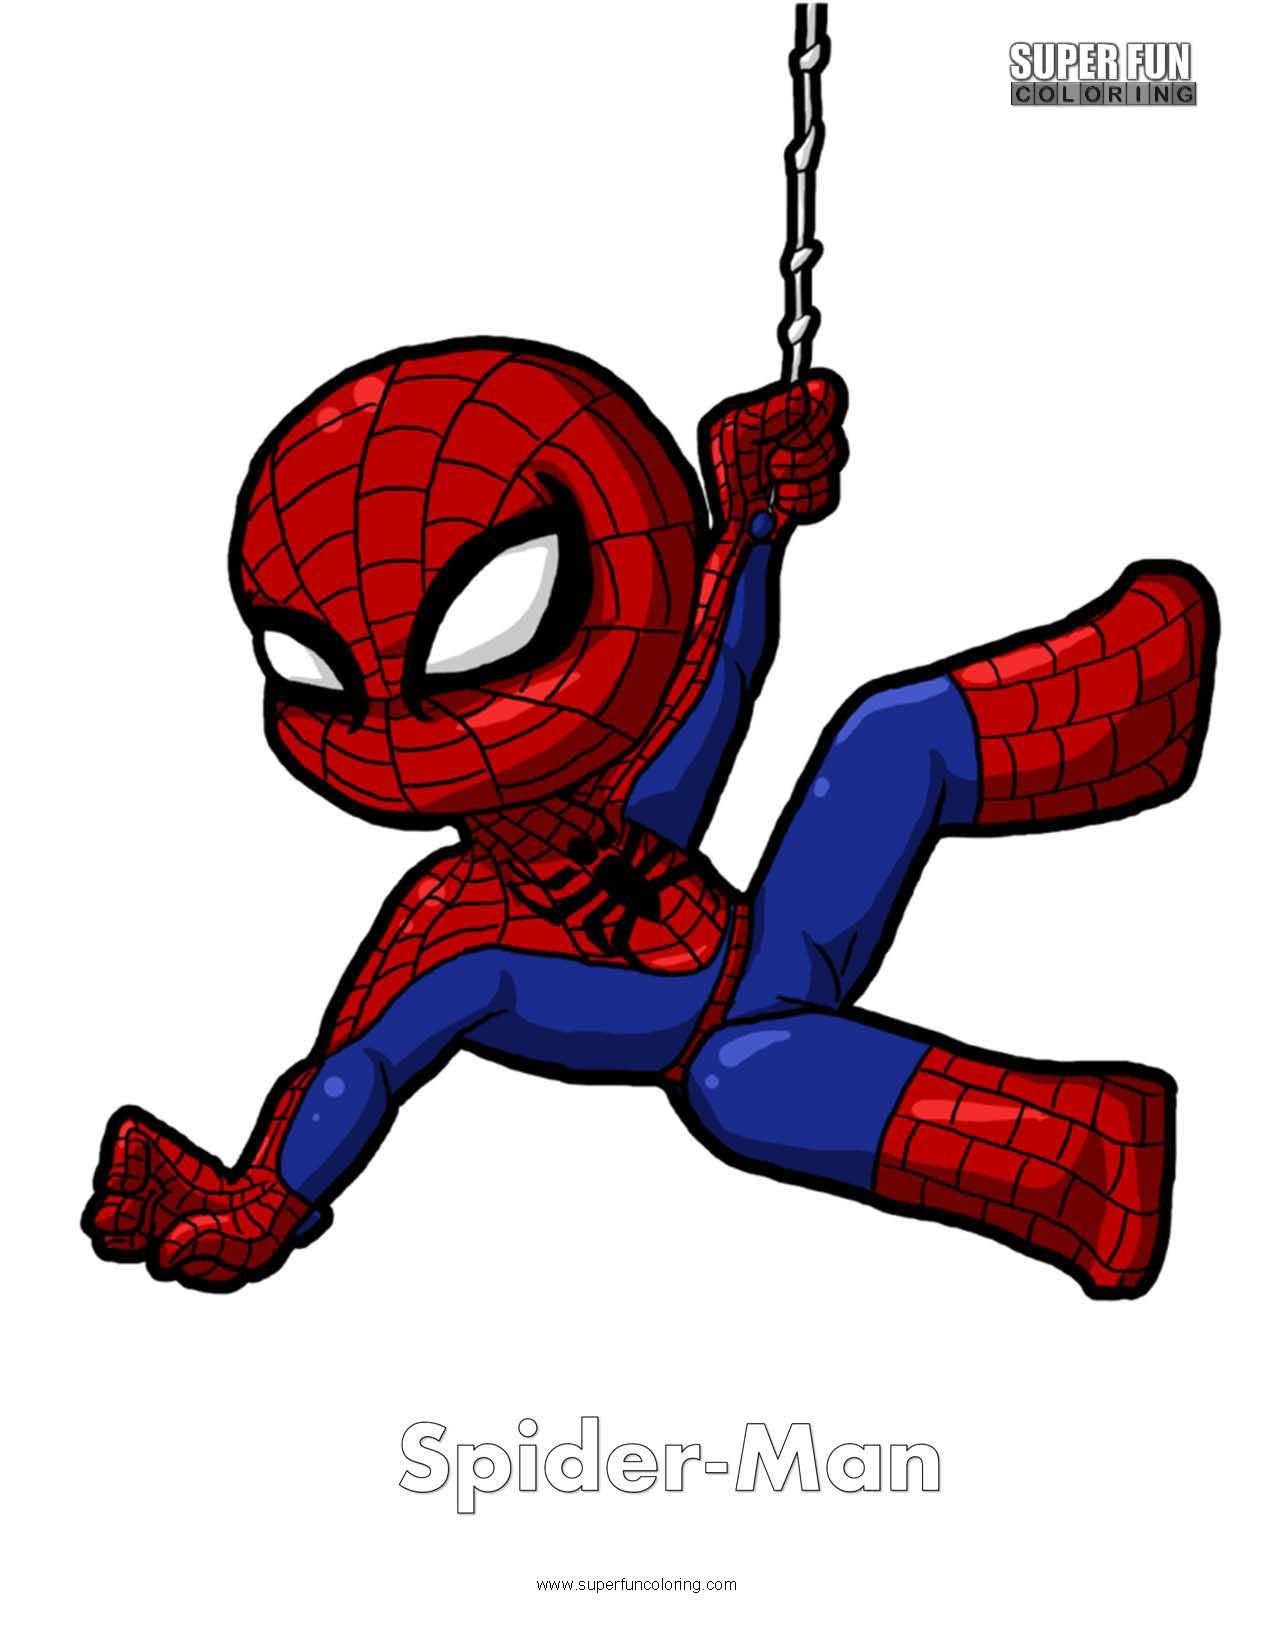 Spider Man Free Superhero Coloring Page Spiderman Drawing Baby Spiderman Spiderman Cartoon